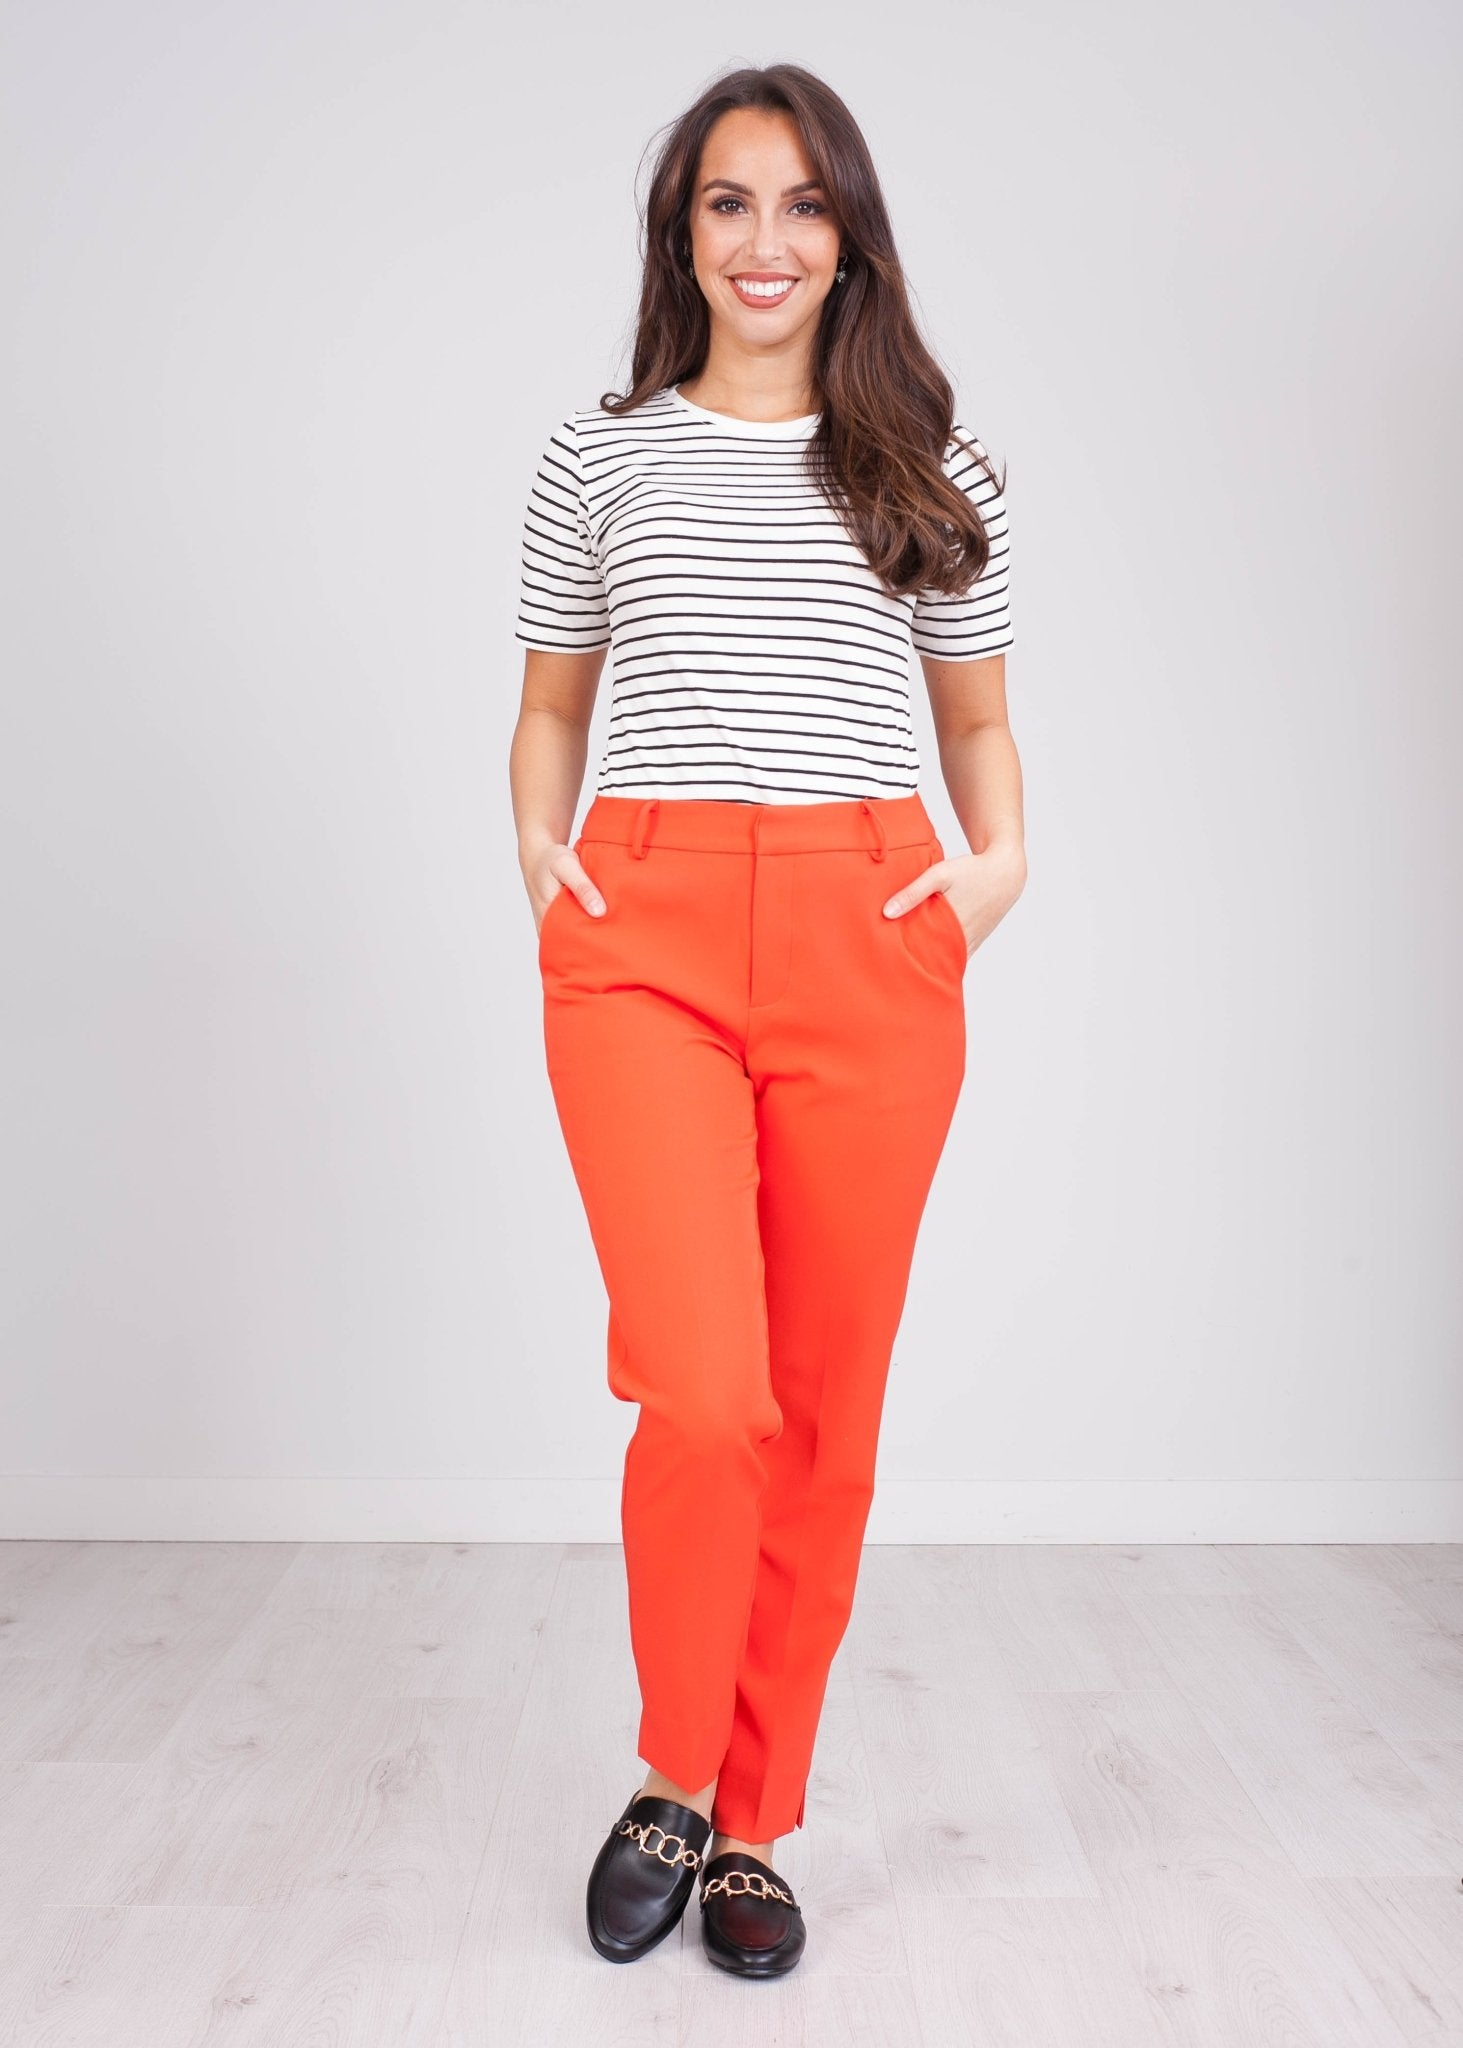 Arabella Coral Red Trousers - The Walk in Wardrobe